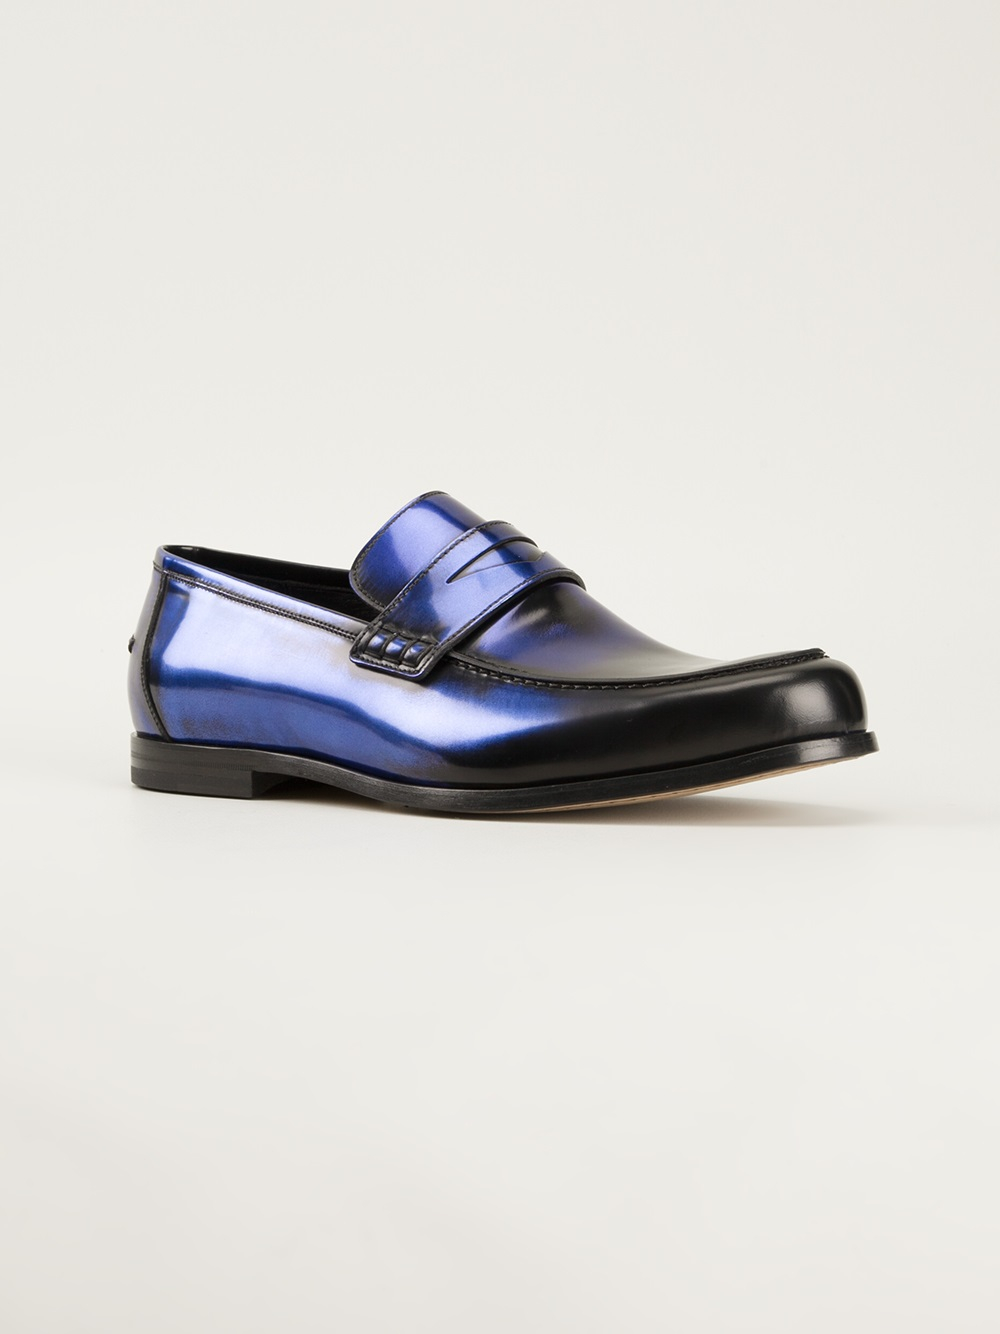 7cc132ea43e Lyst - Jimmy Choo Darblay Loafers in Blue for Men